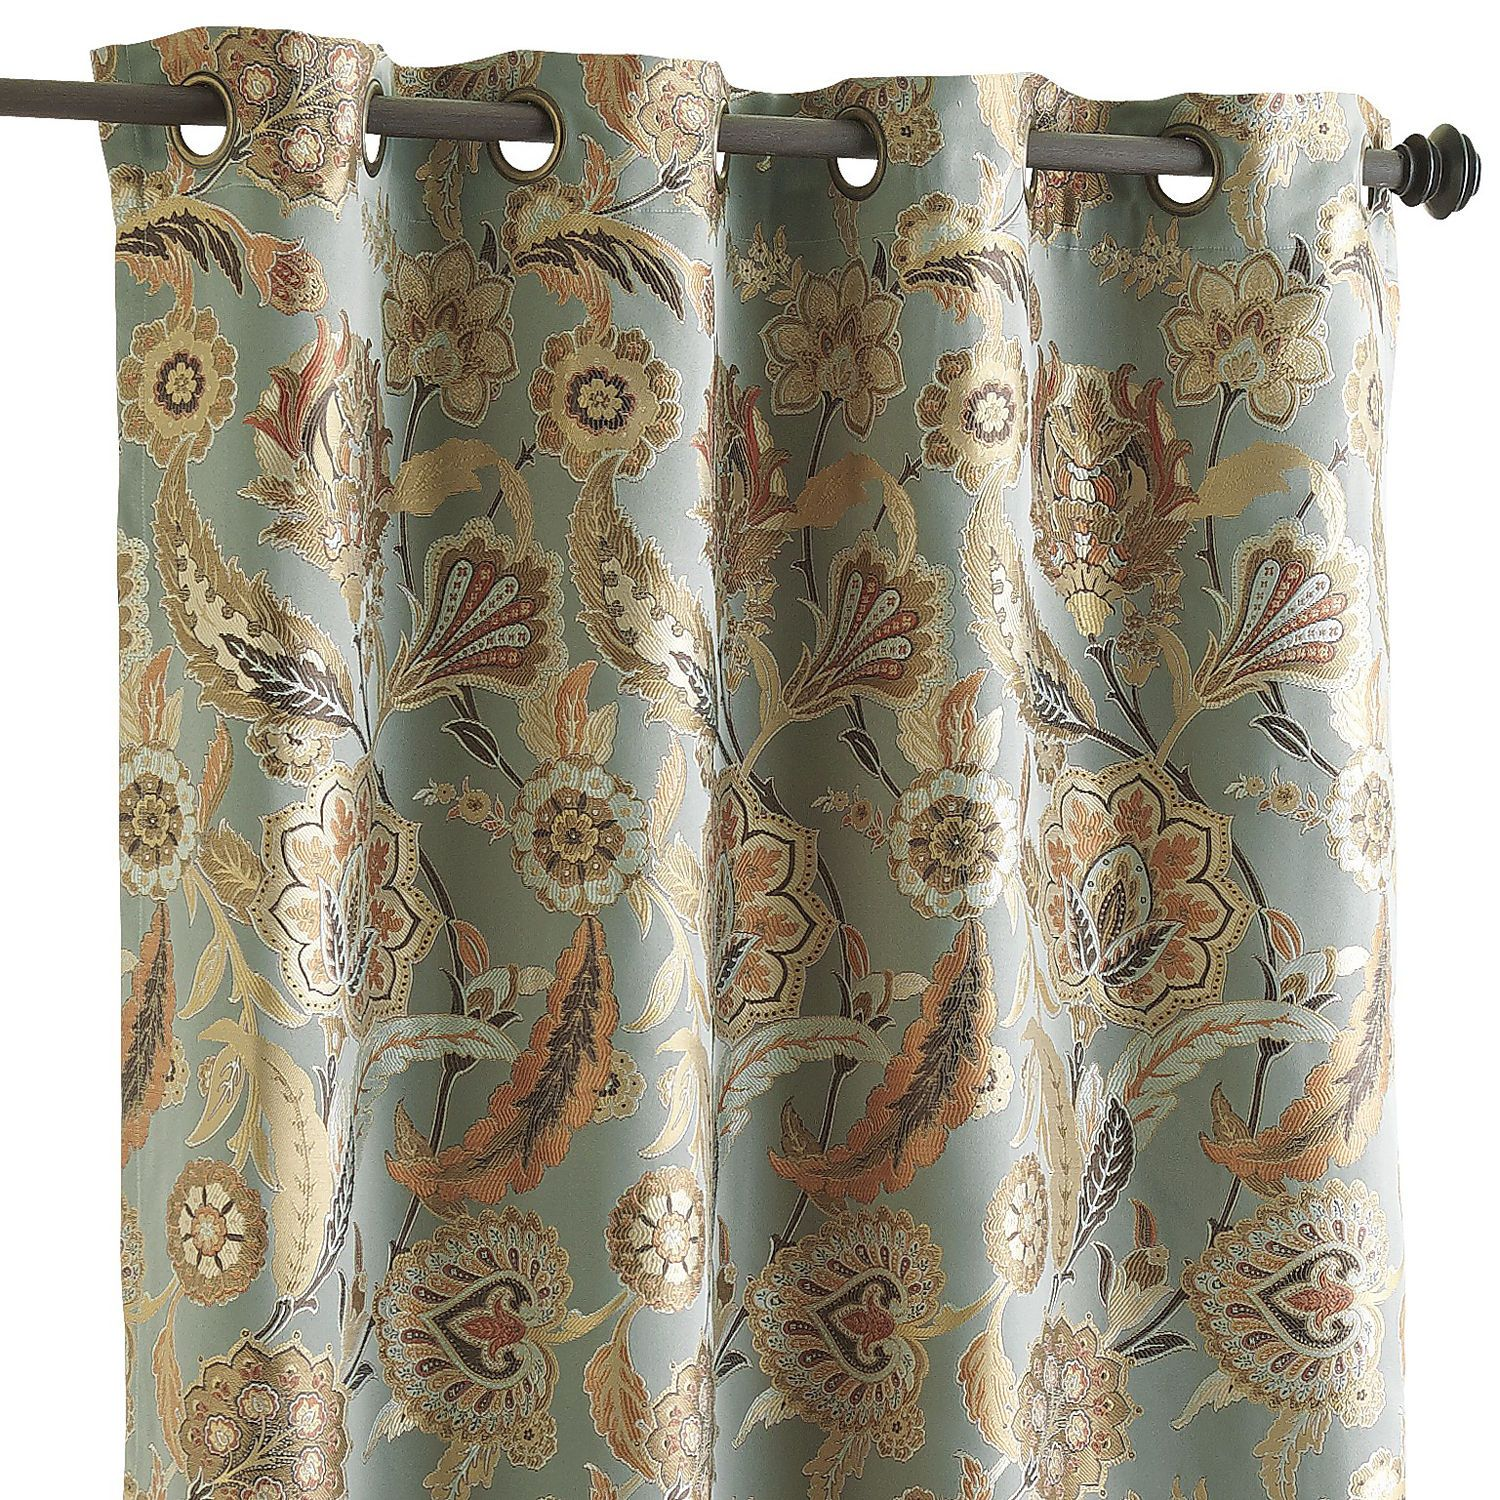 Pier One Imports curtains Pearson Floral Curtain 84